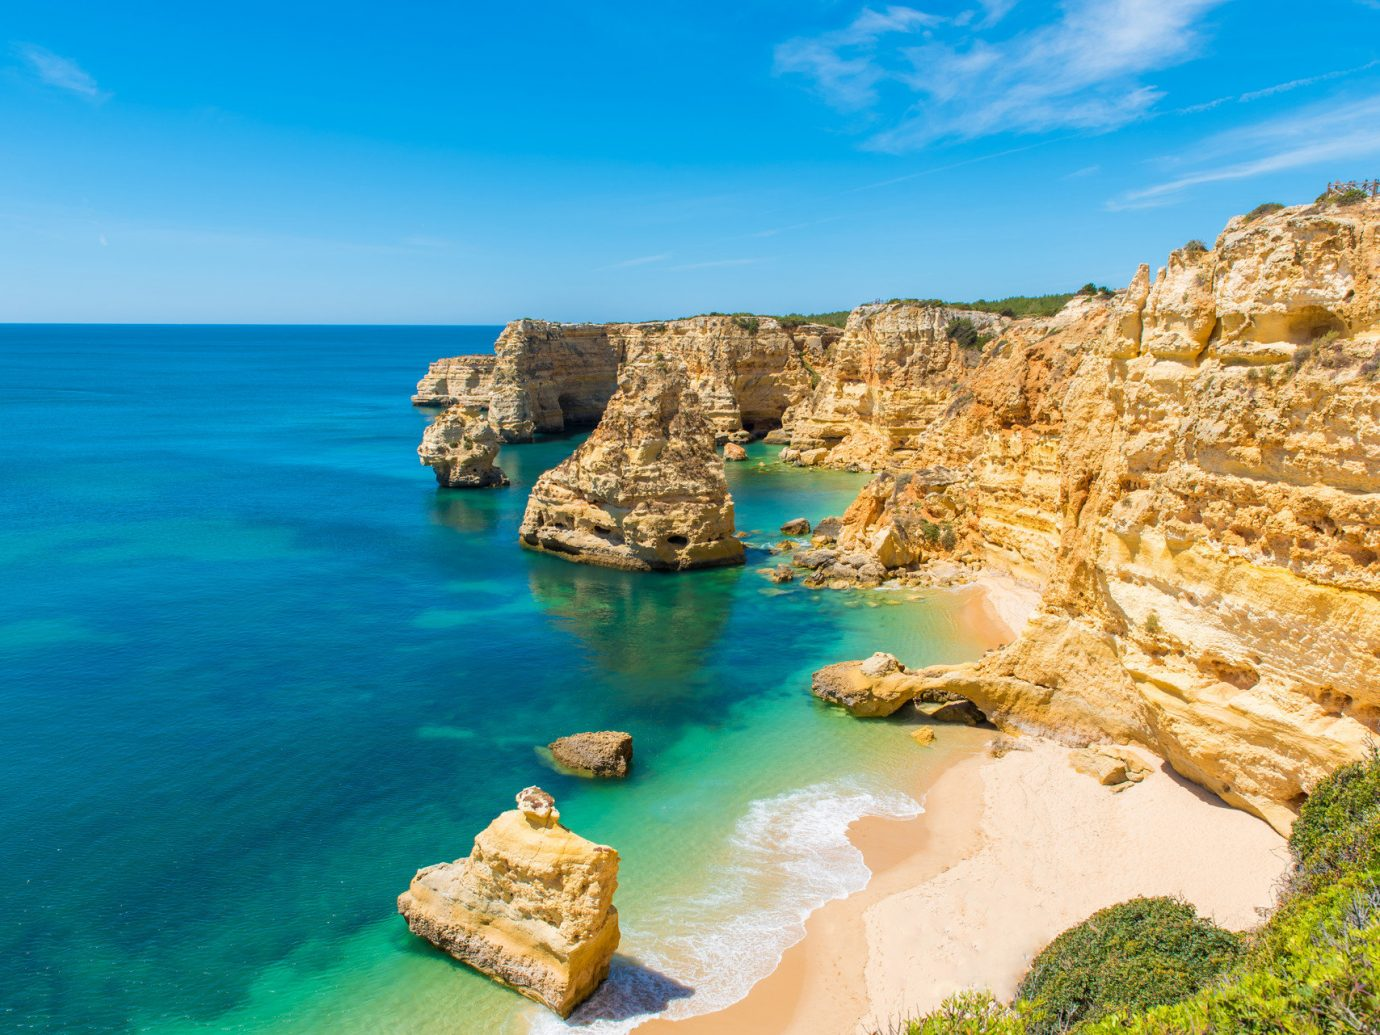 Beach outside of Carvoeiro, Portugal